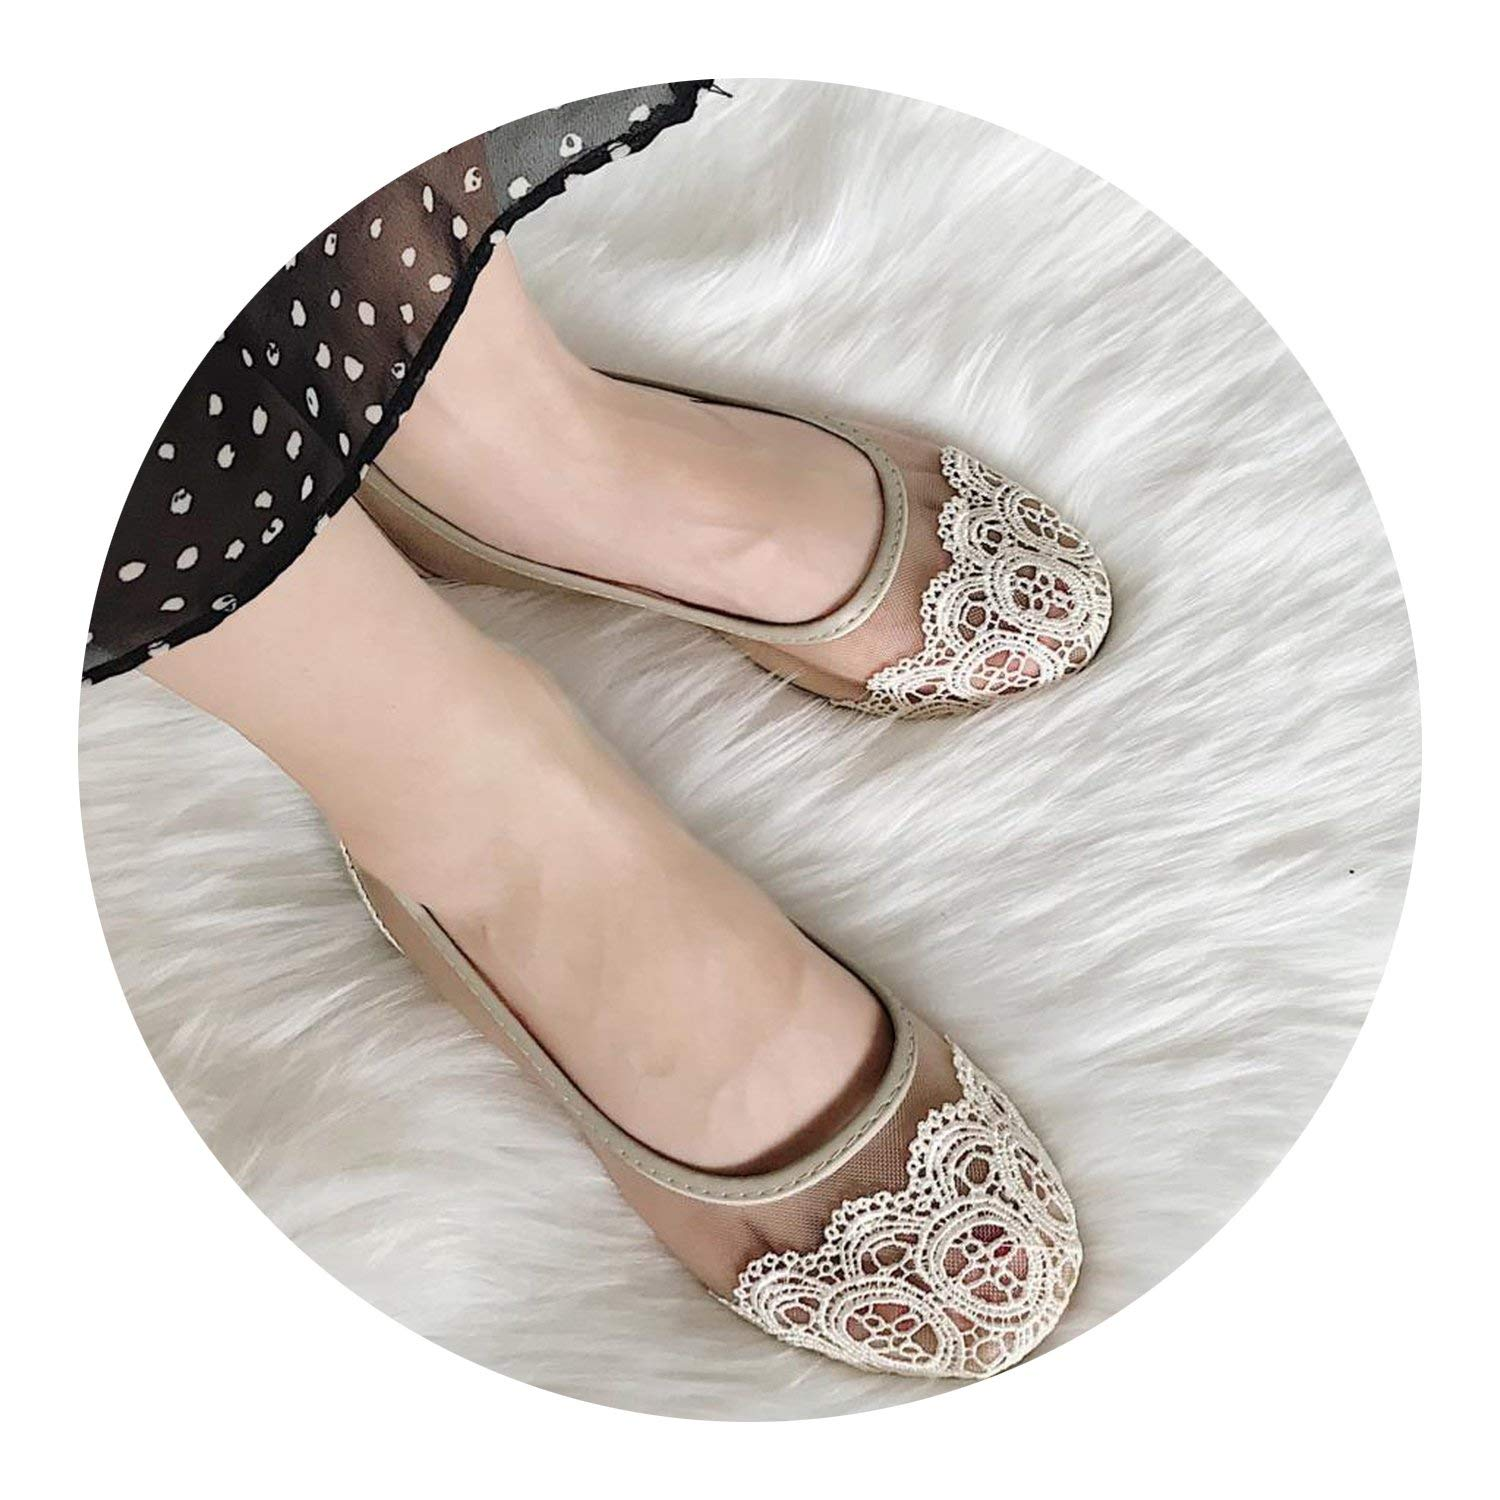 76d49ecff6f Get Quotations · Kingwhisht Loafers   Slip-Ons Mesh Loafers Lace Flats Shoes  Hollow Out Slip on Flat